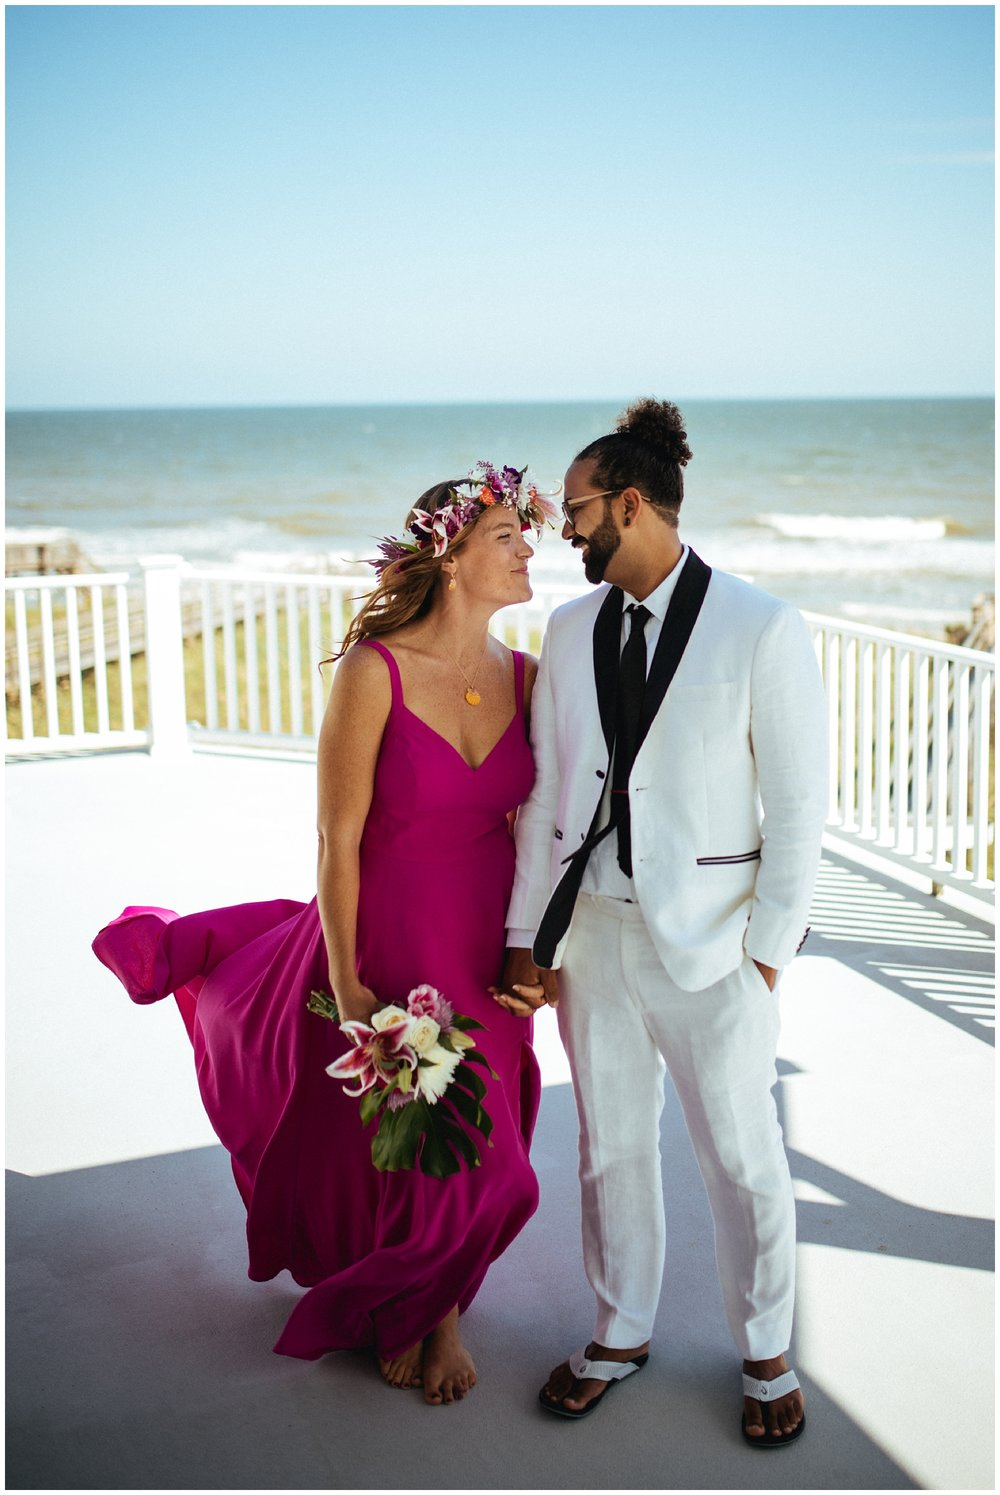 unique-beach-wedding5.jpg